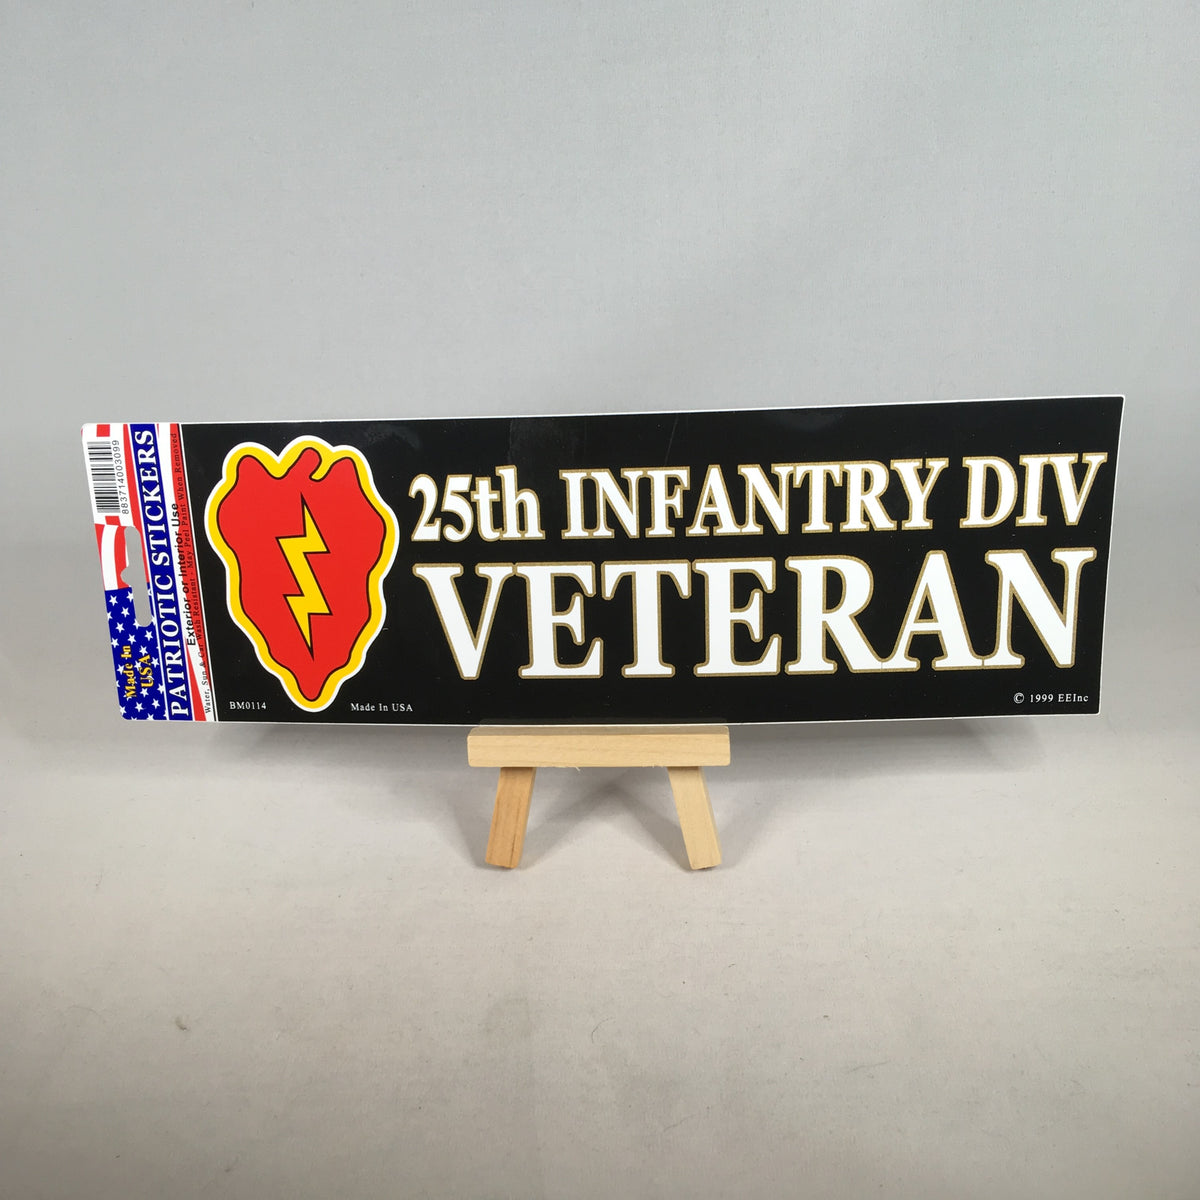 25th Infantry Division Veteran Bumper Sticker